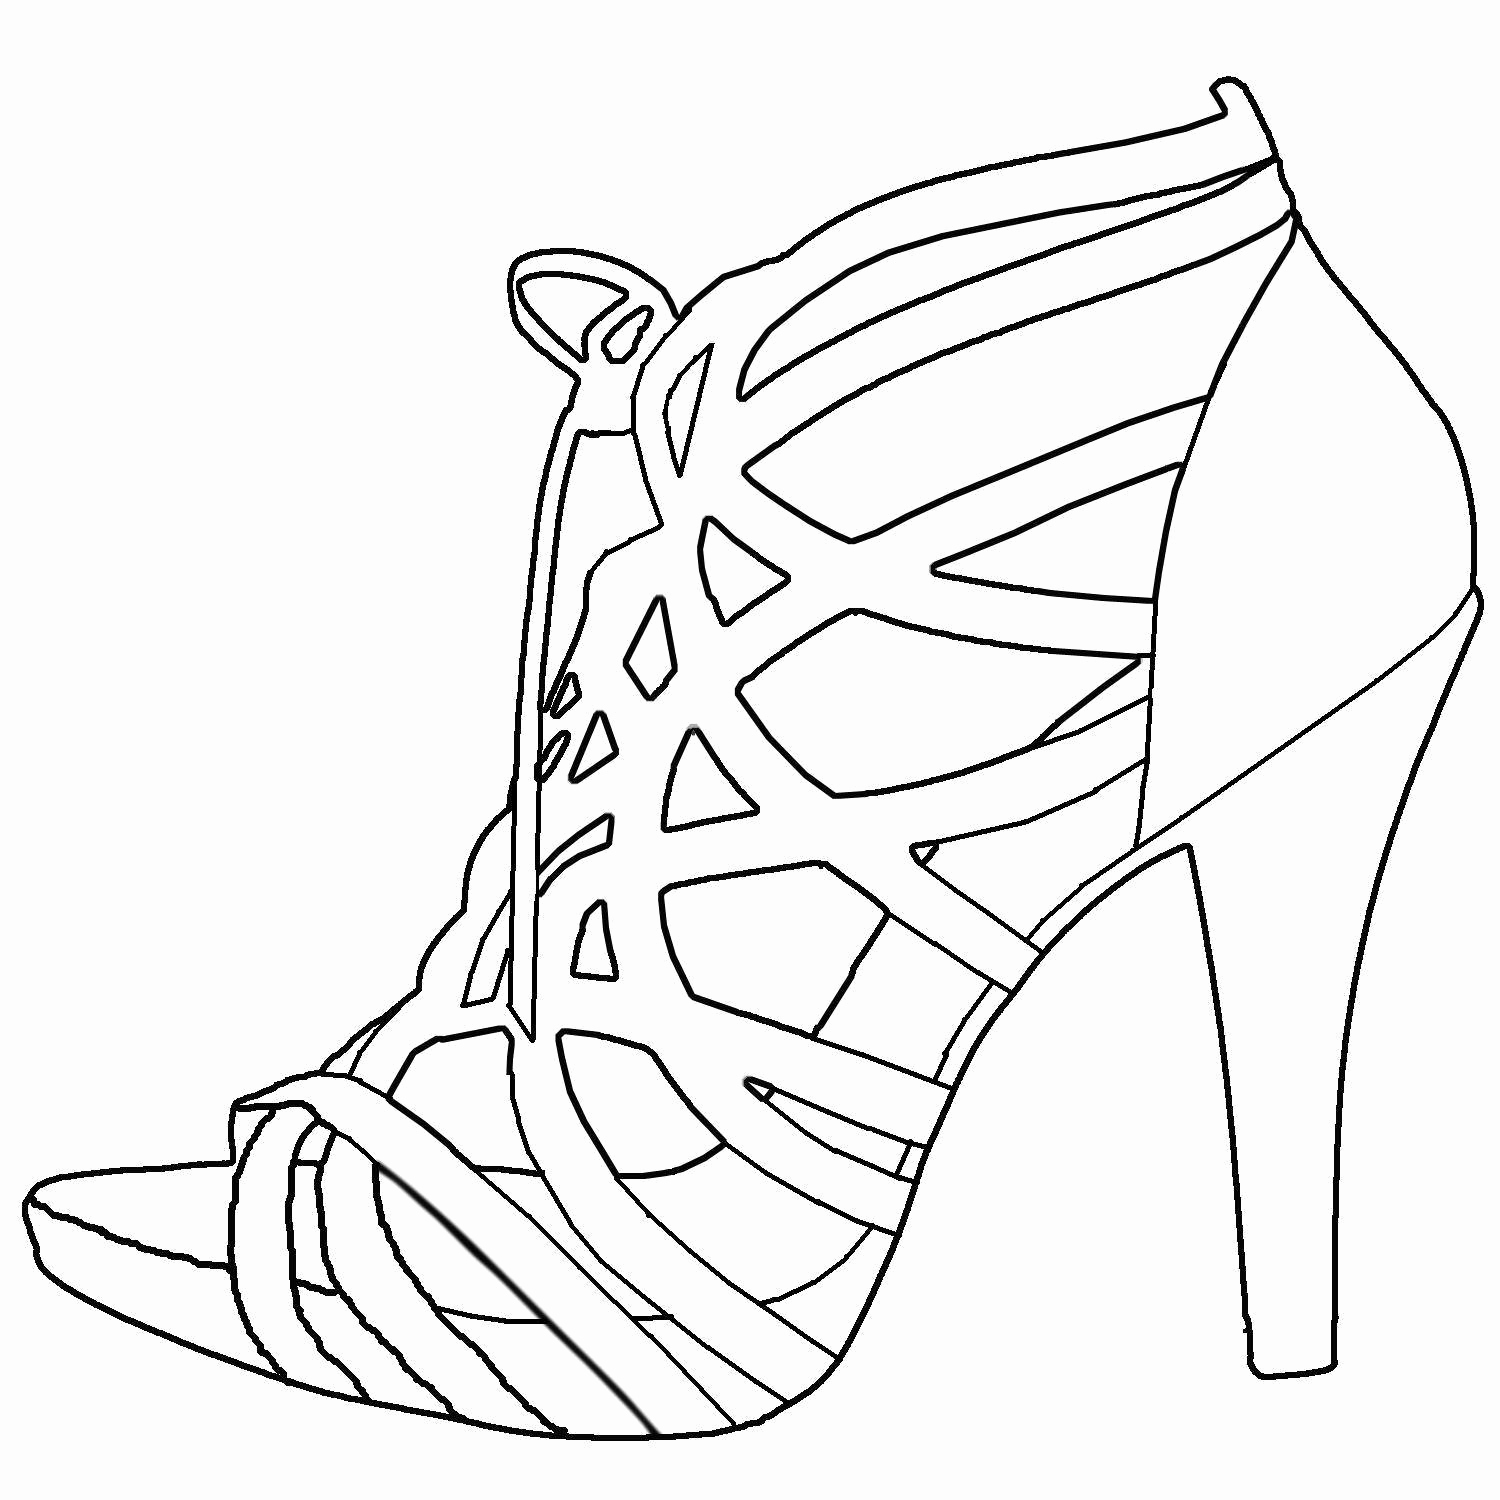 how to draw a heel step by step high heels drawing free download on clipartmag step draw to how heel by a step